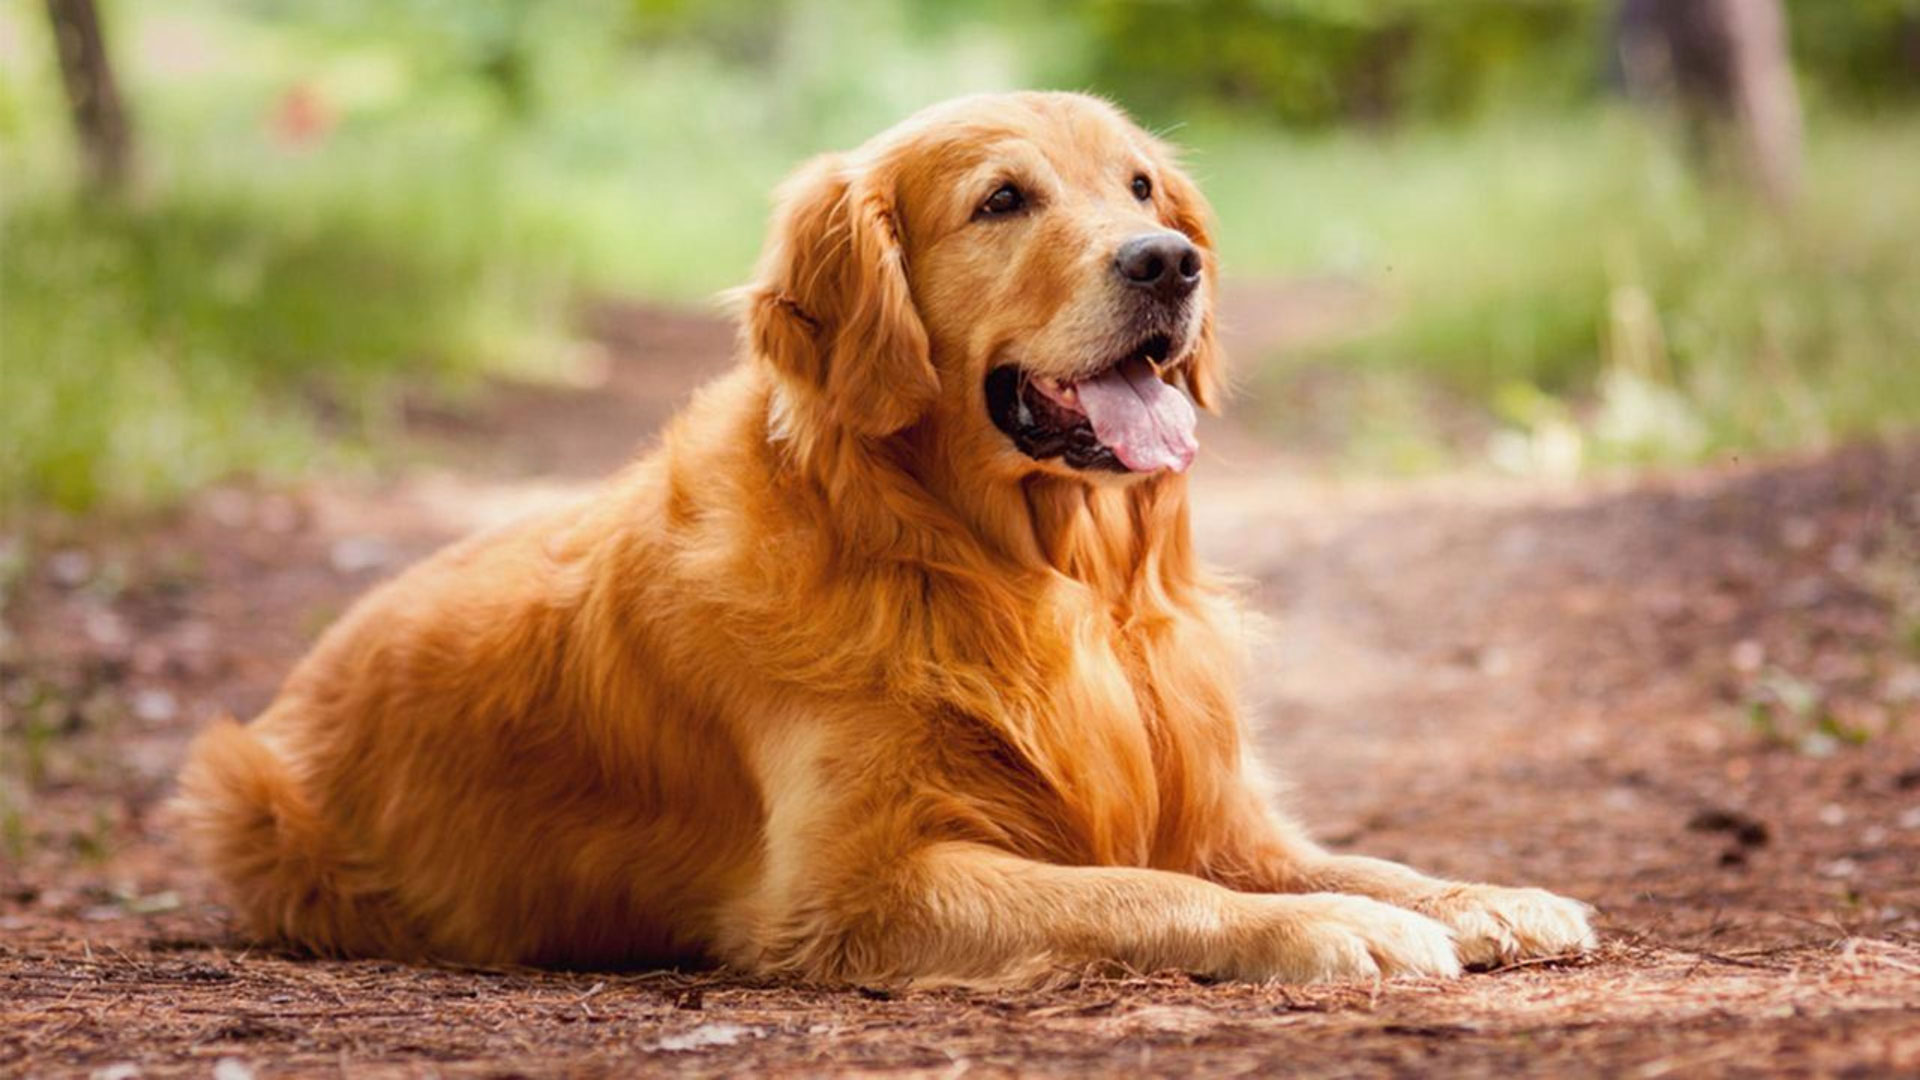 Gold Golden Retriever